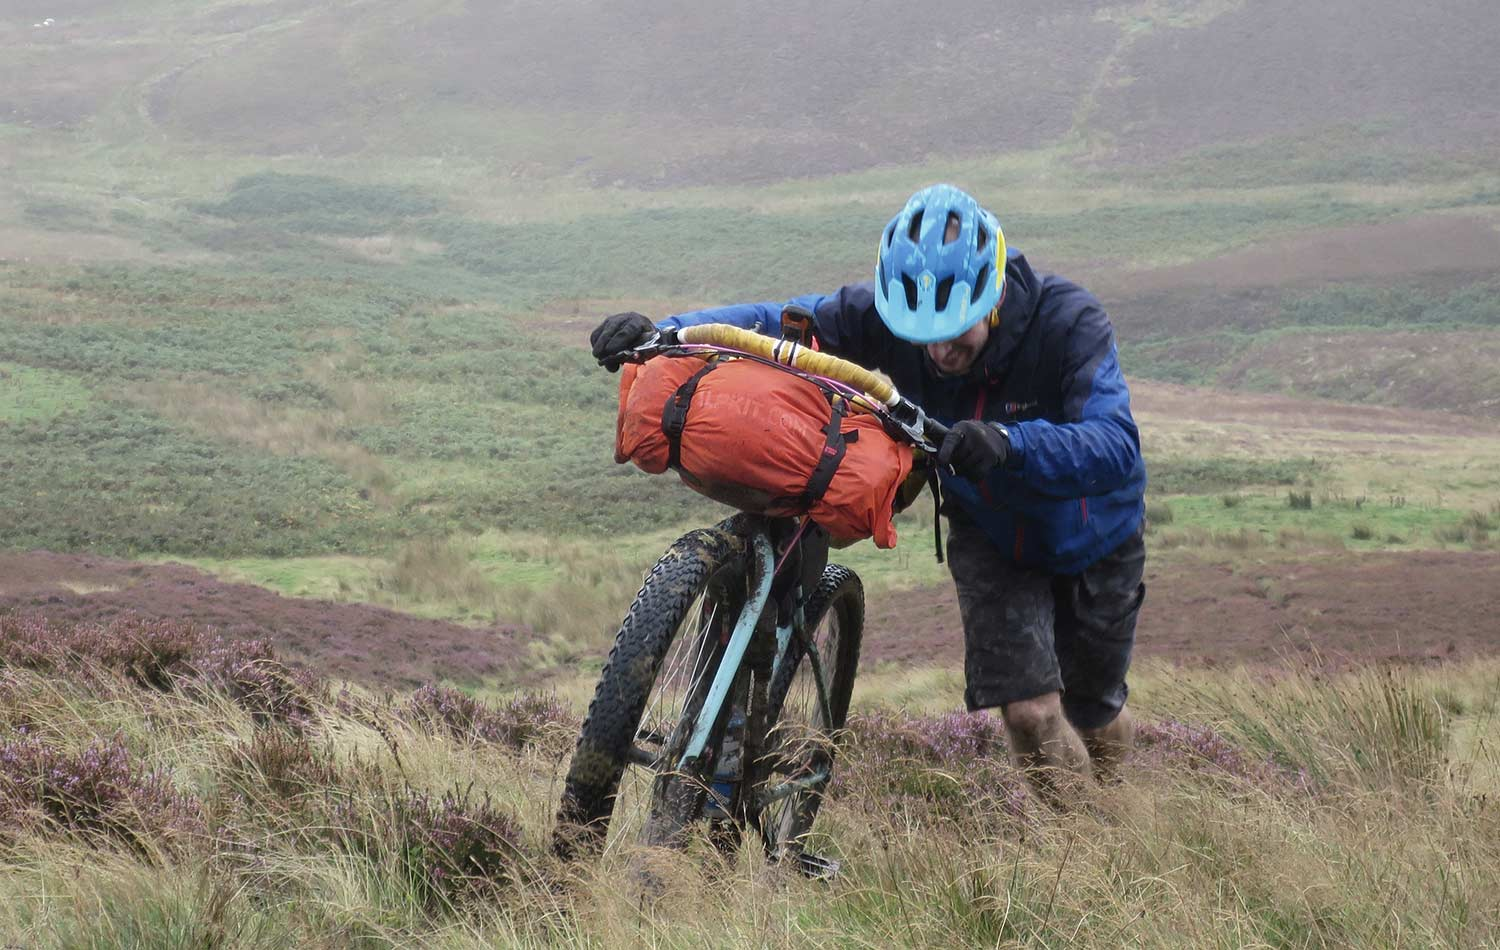 bikepacking in scotland is an adventure